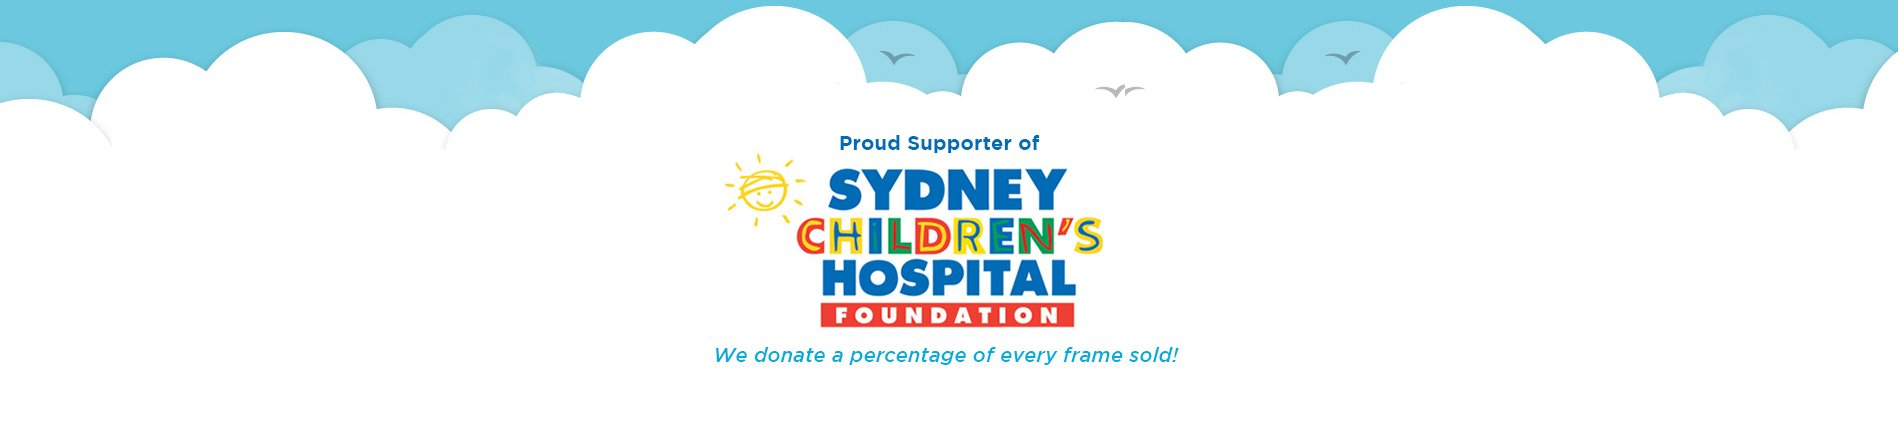 Proud supporter Sydney Children's Hospital - optometrist in Sydney